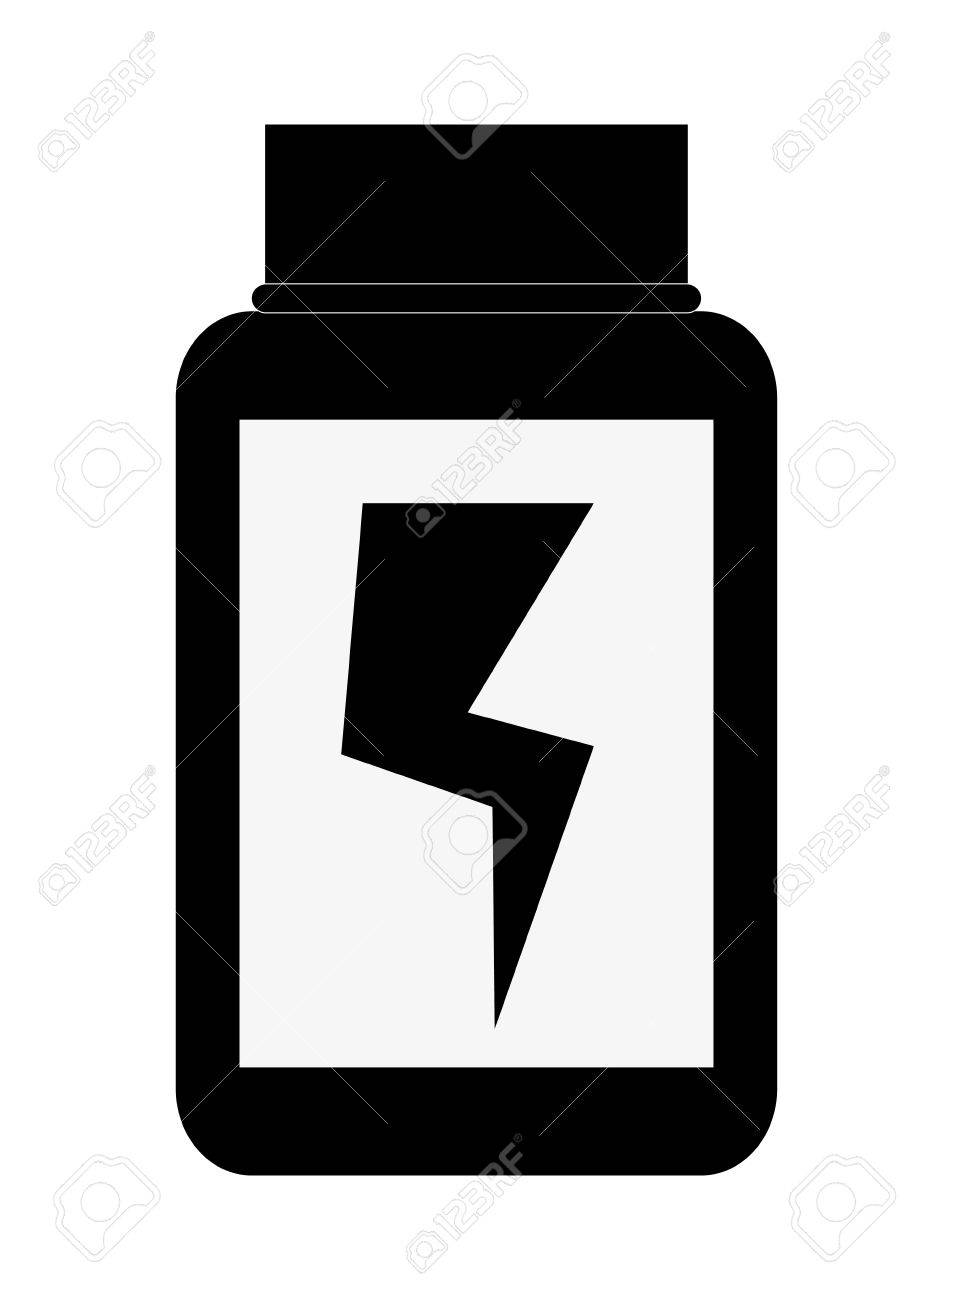 953x1300 Simple Black And White Dietary Supplement With Lightning Bolt